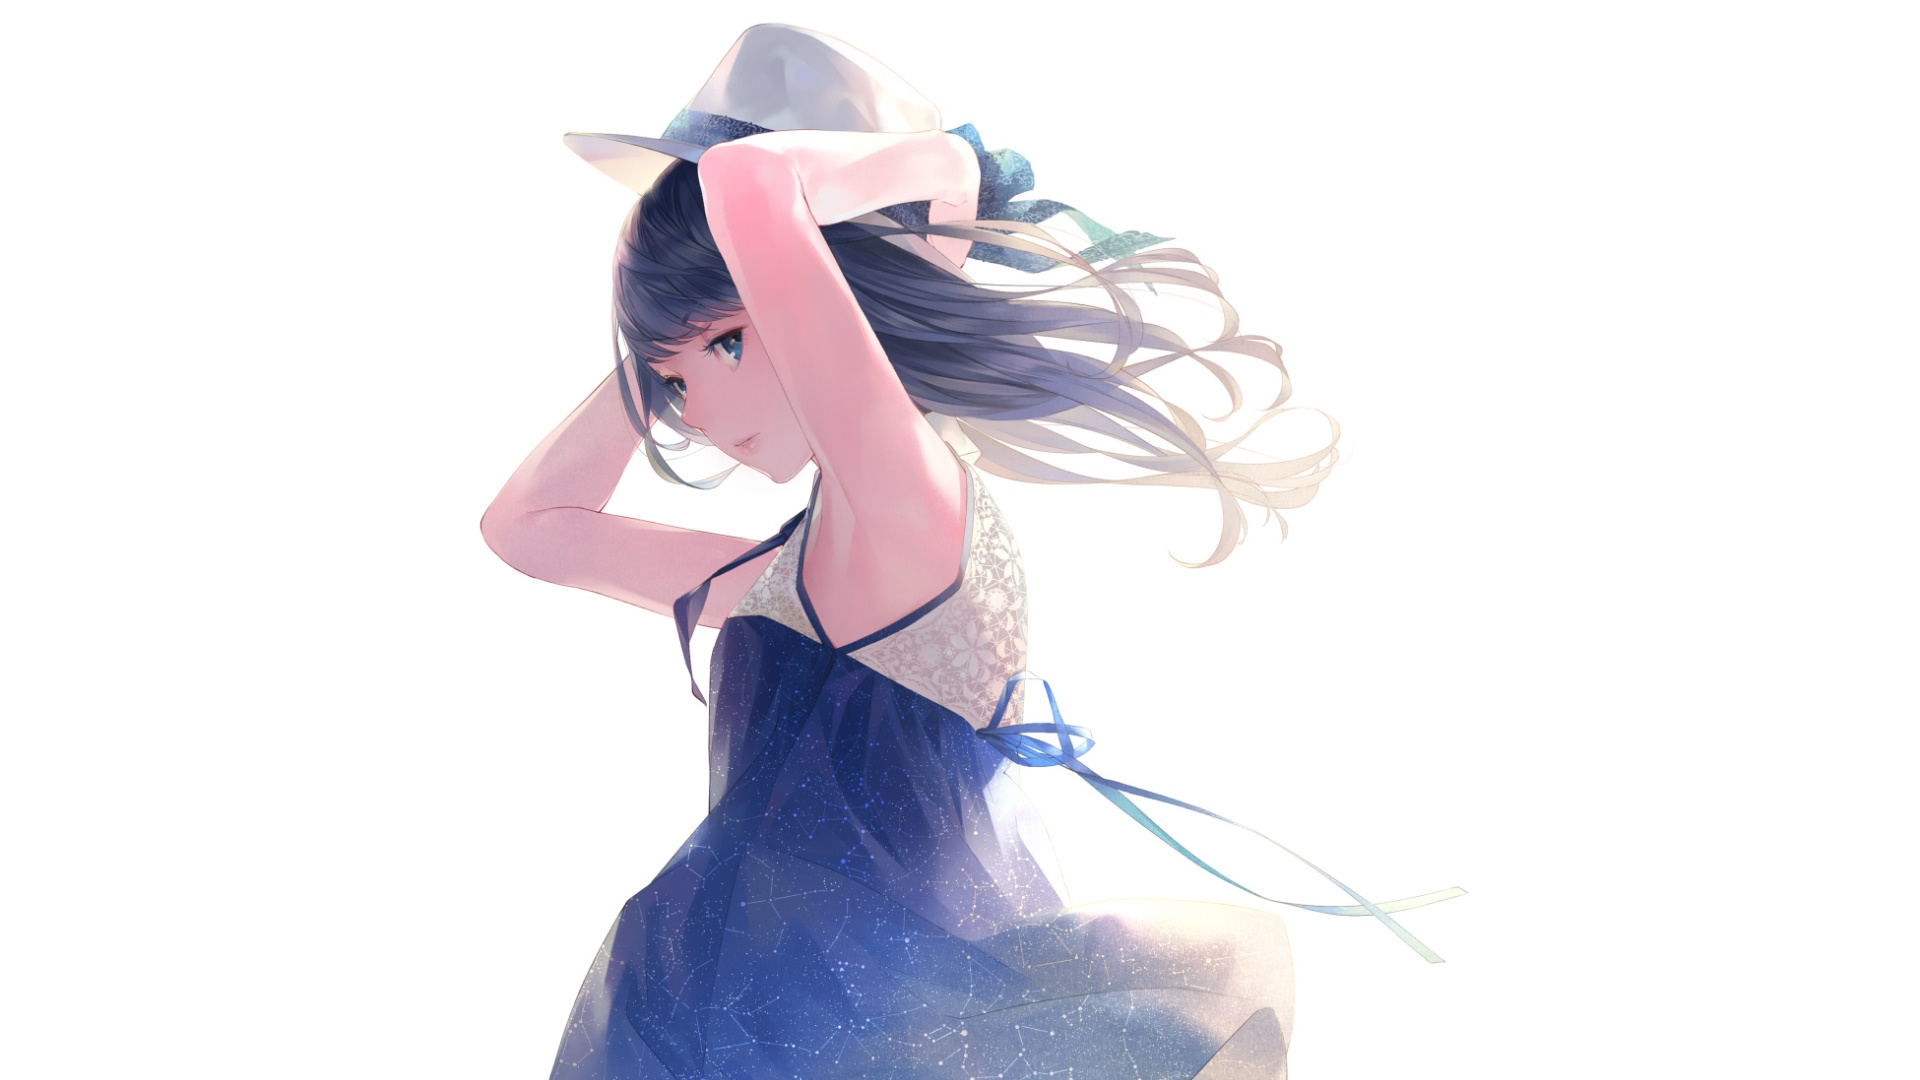 Anime girl in hat wallpaper